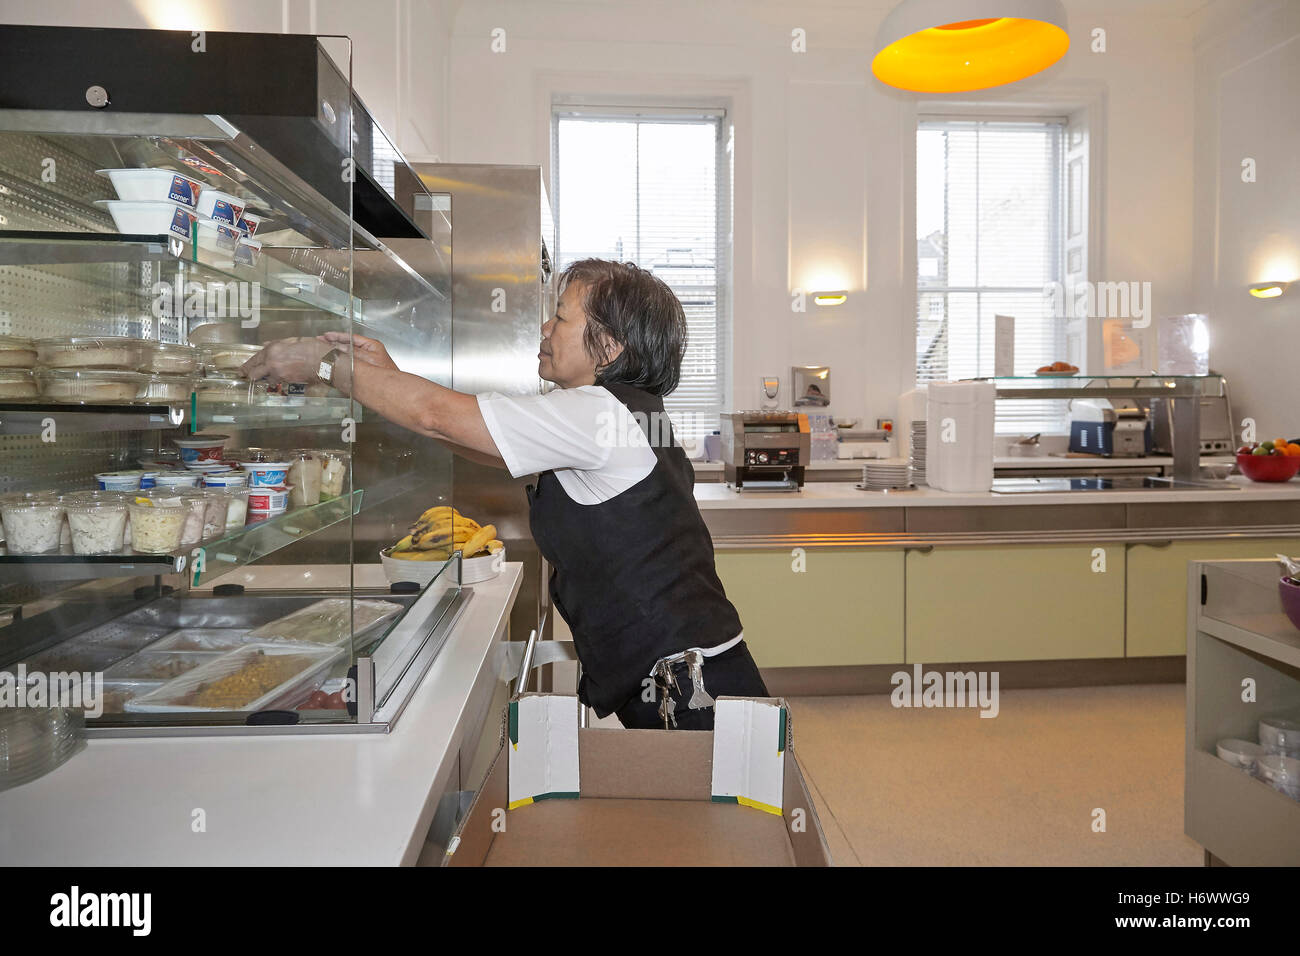 Kitchen worker, replenishing stock and tidying up in a works canteen. - Stock Image